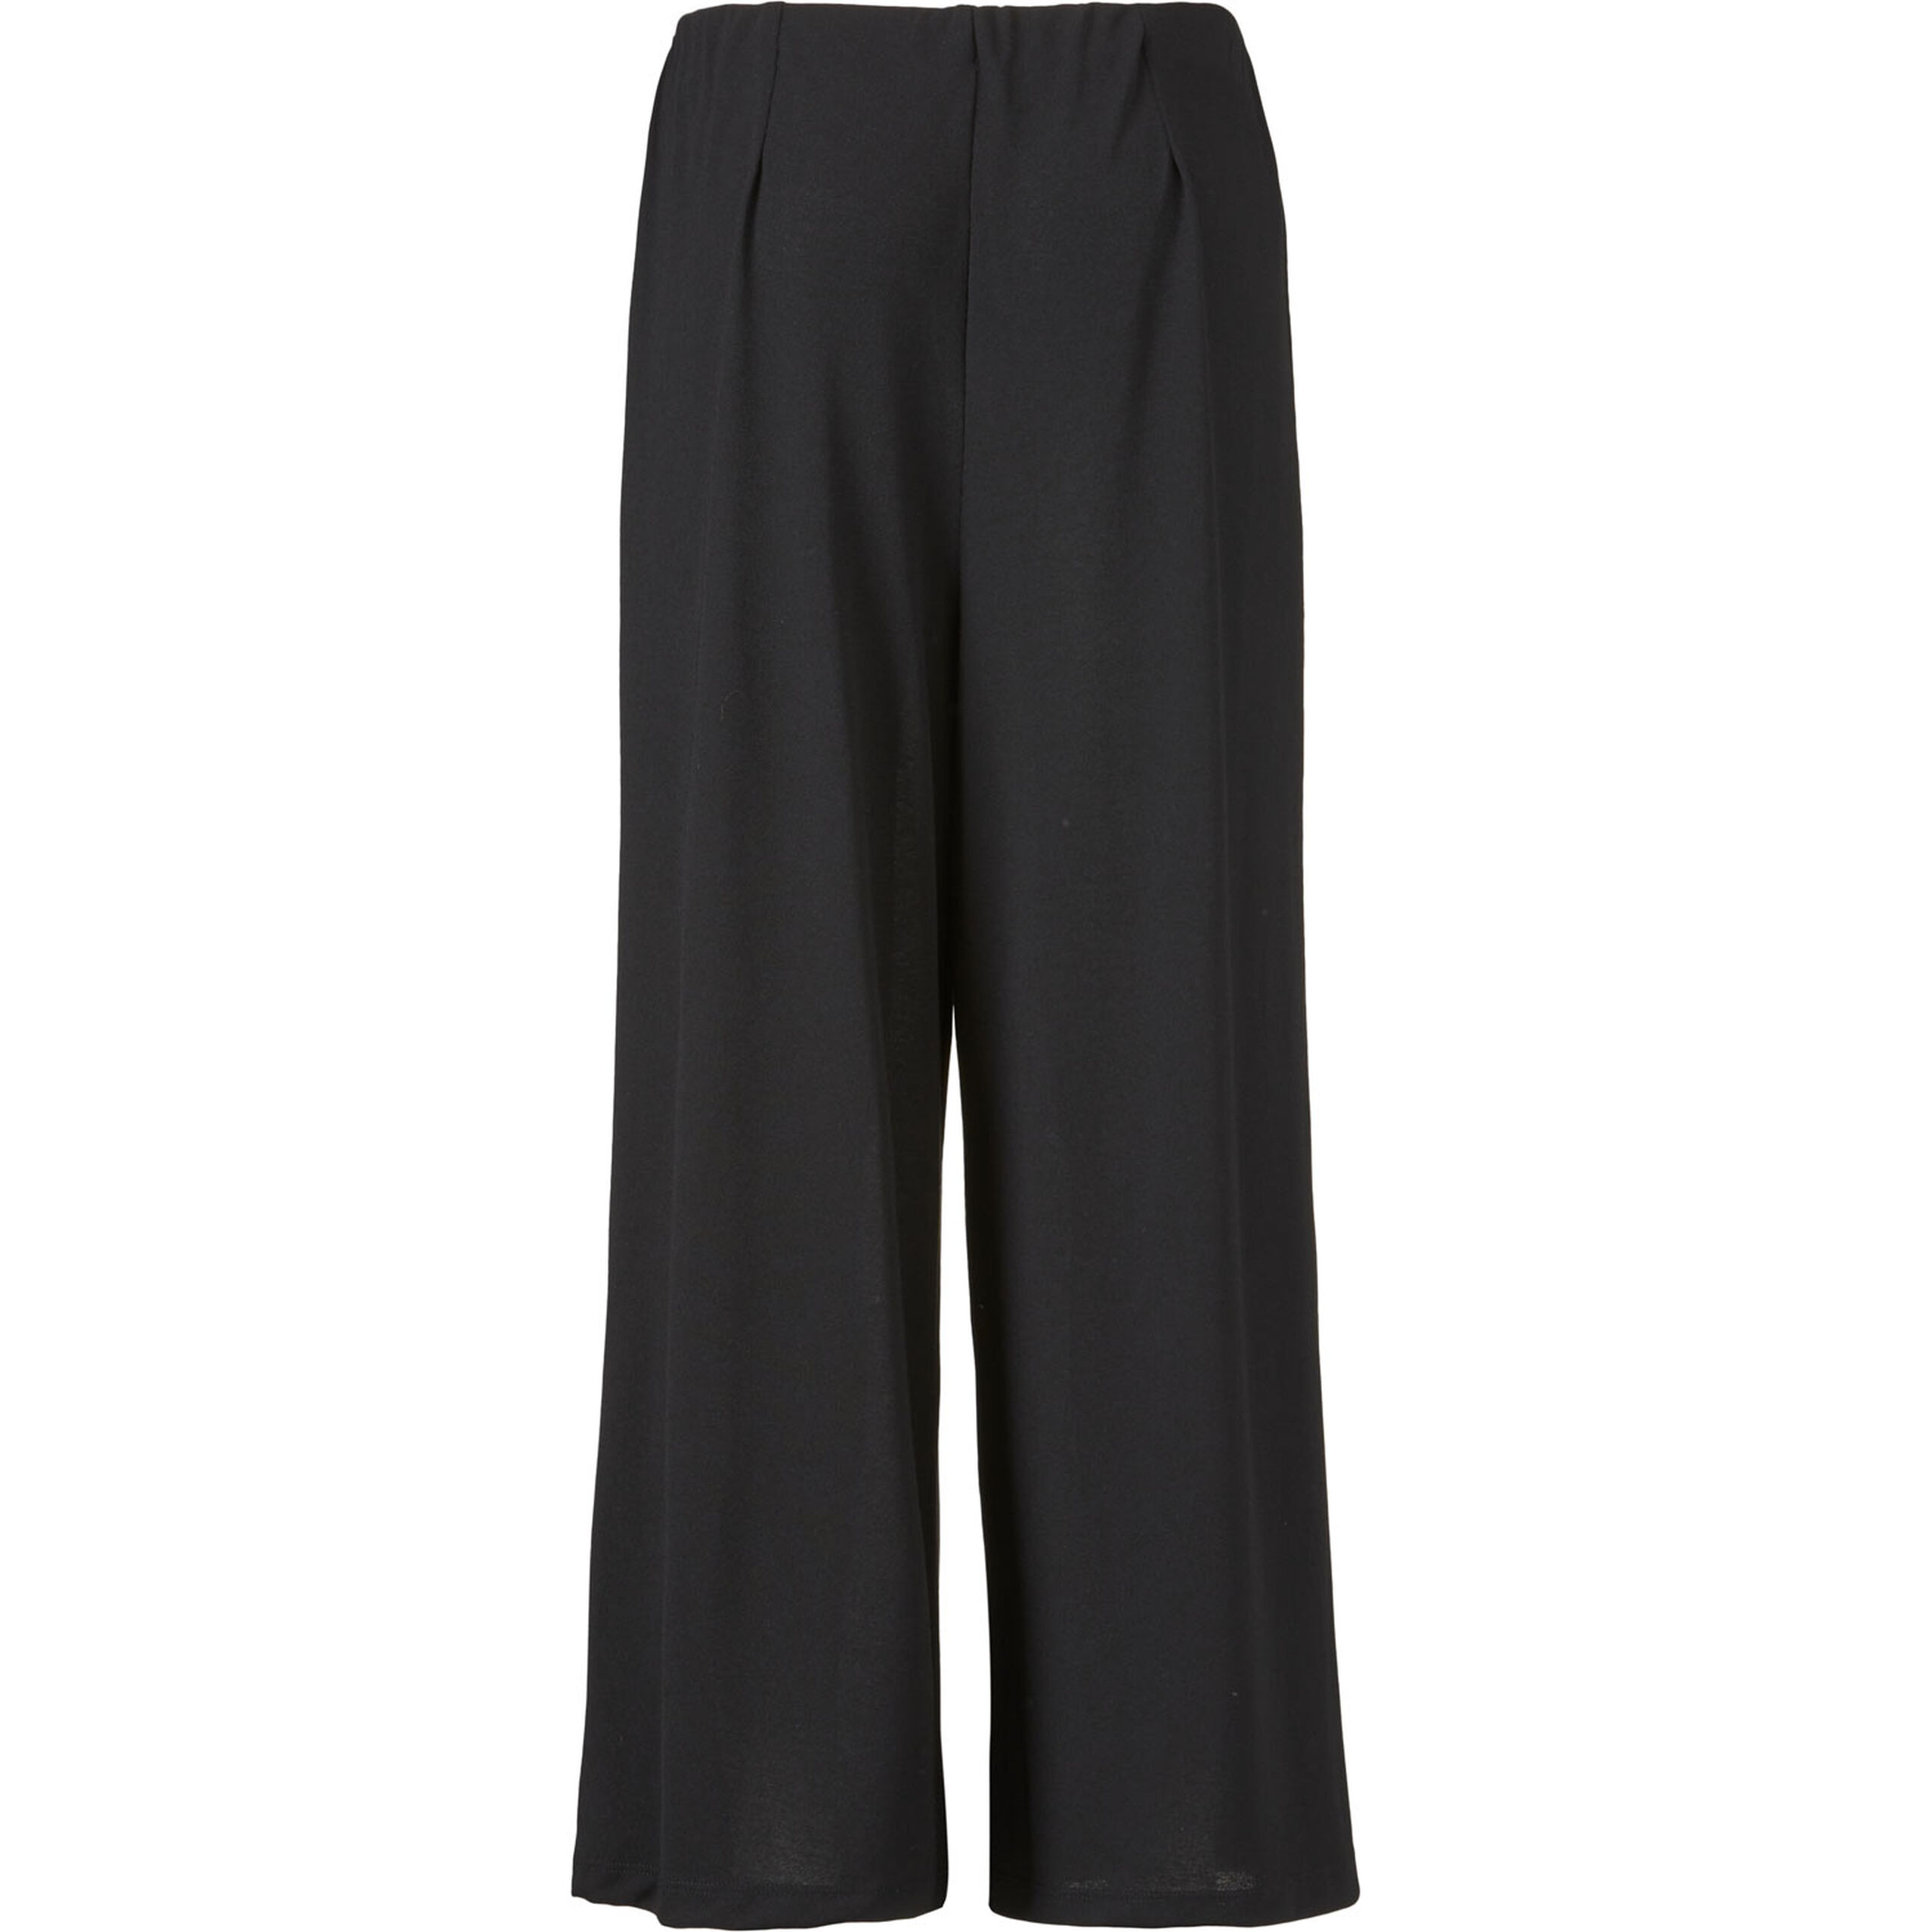 PAM TROUSERS, Black, hi-res